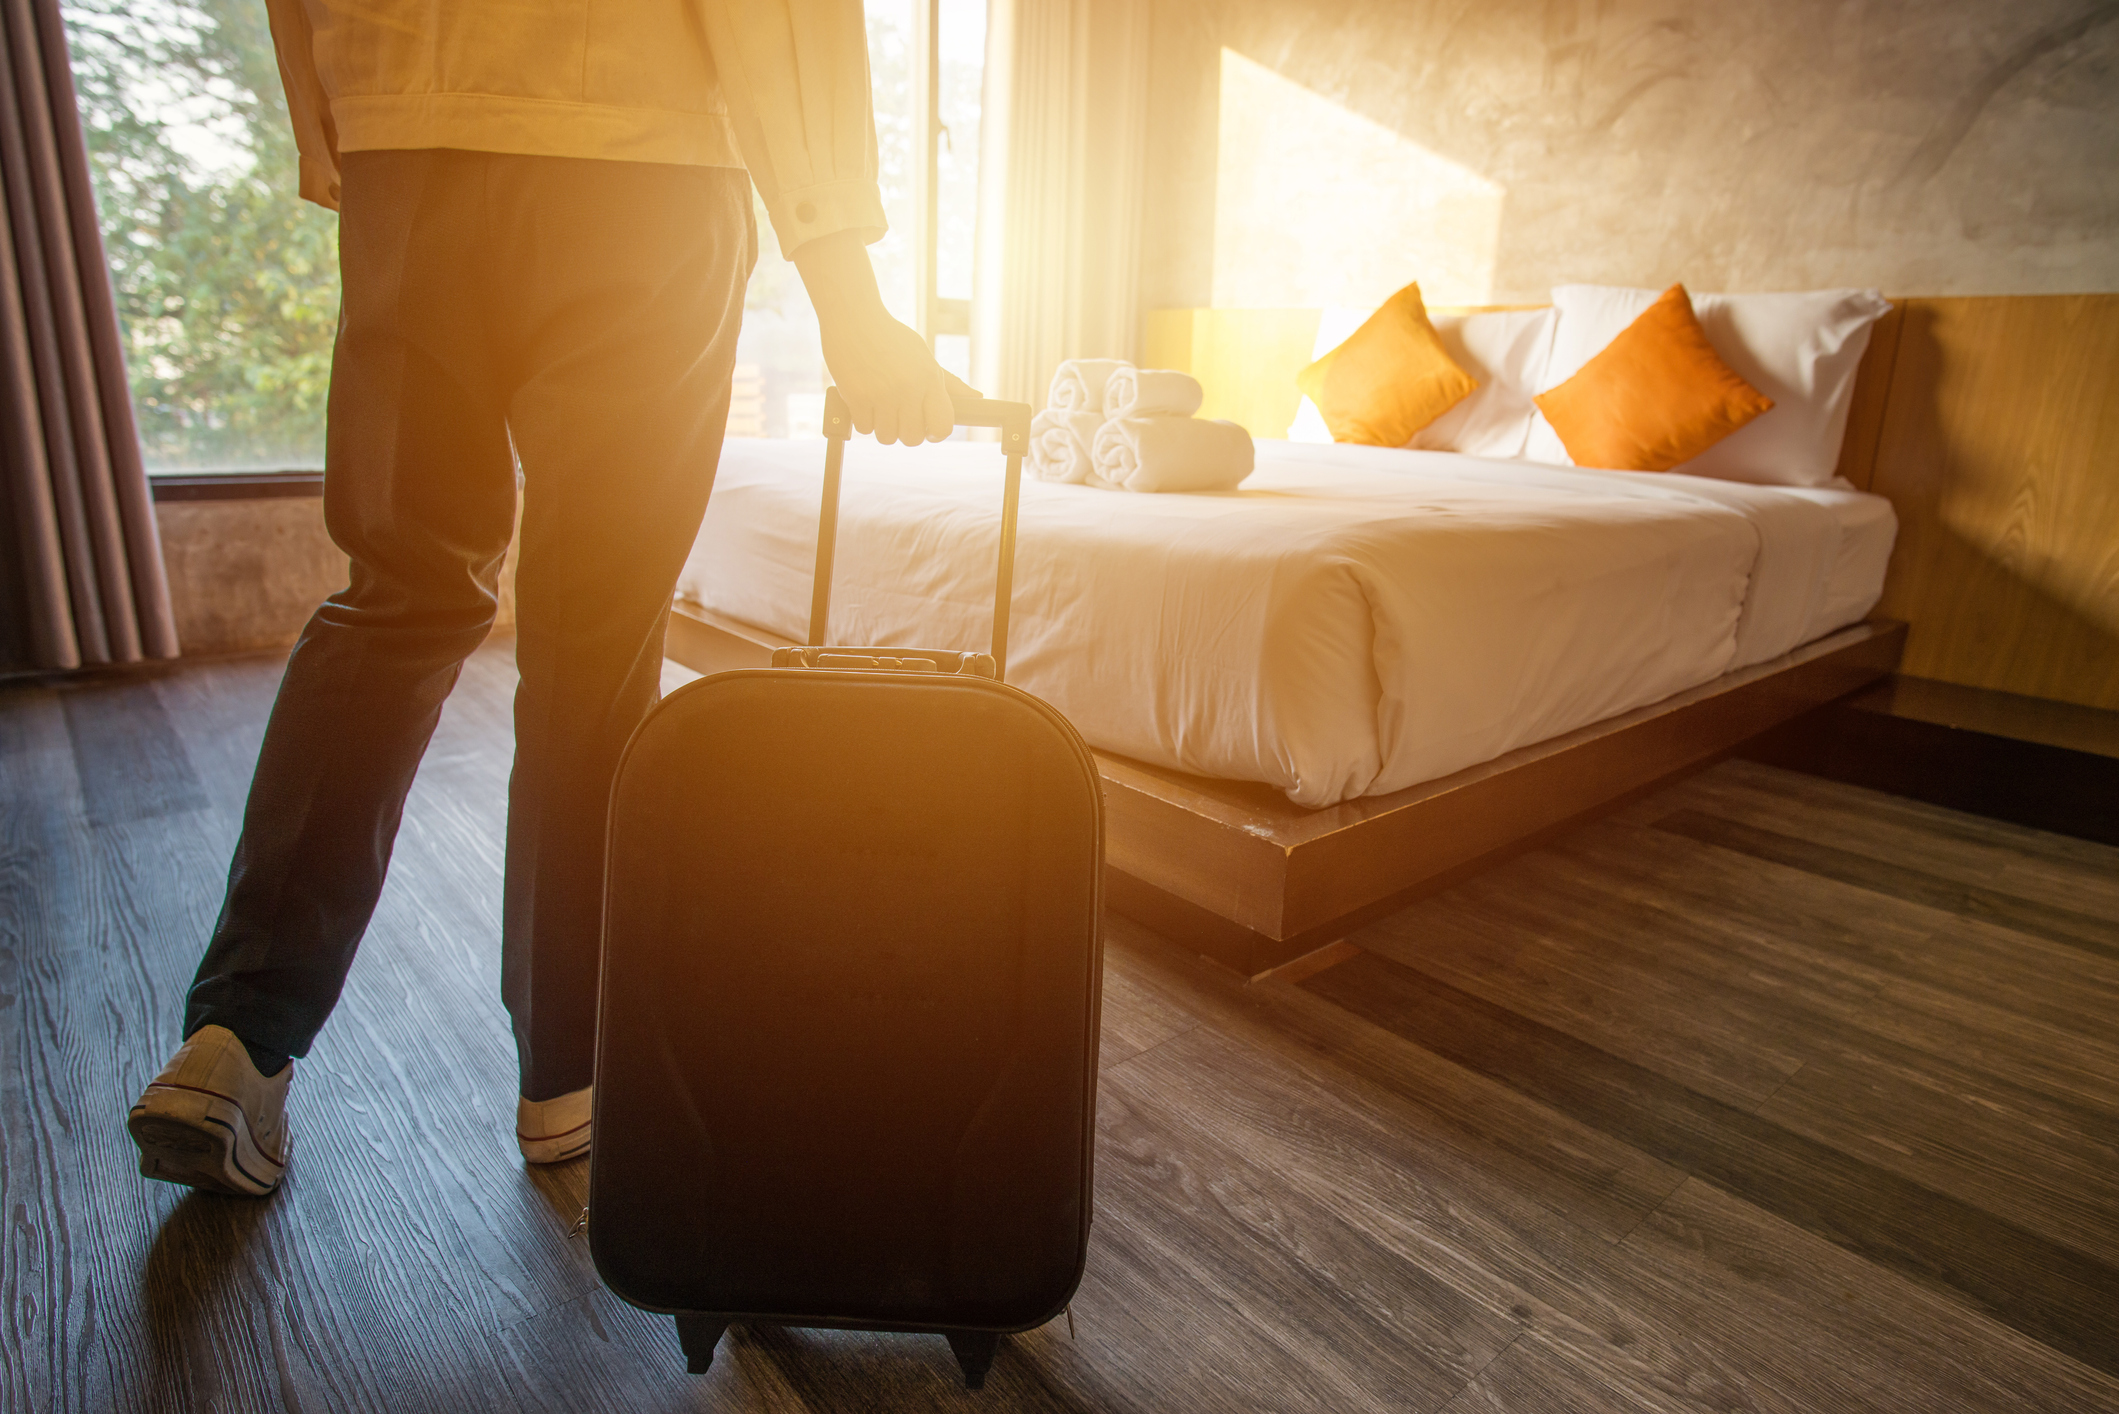 What to look for when booking a hotel for business travel